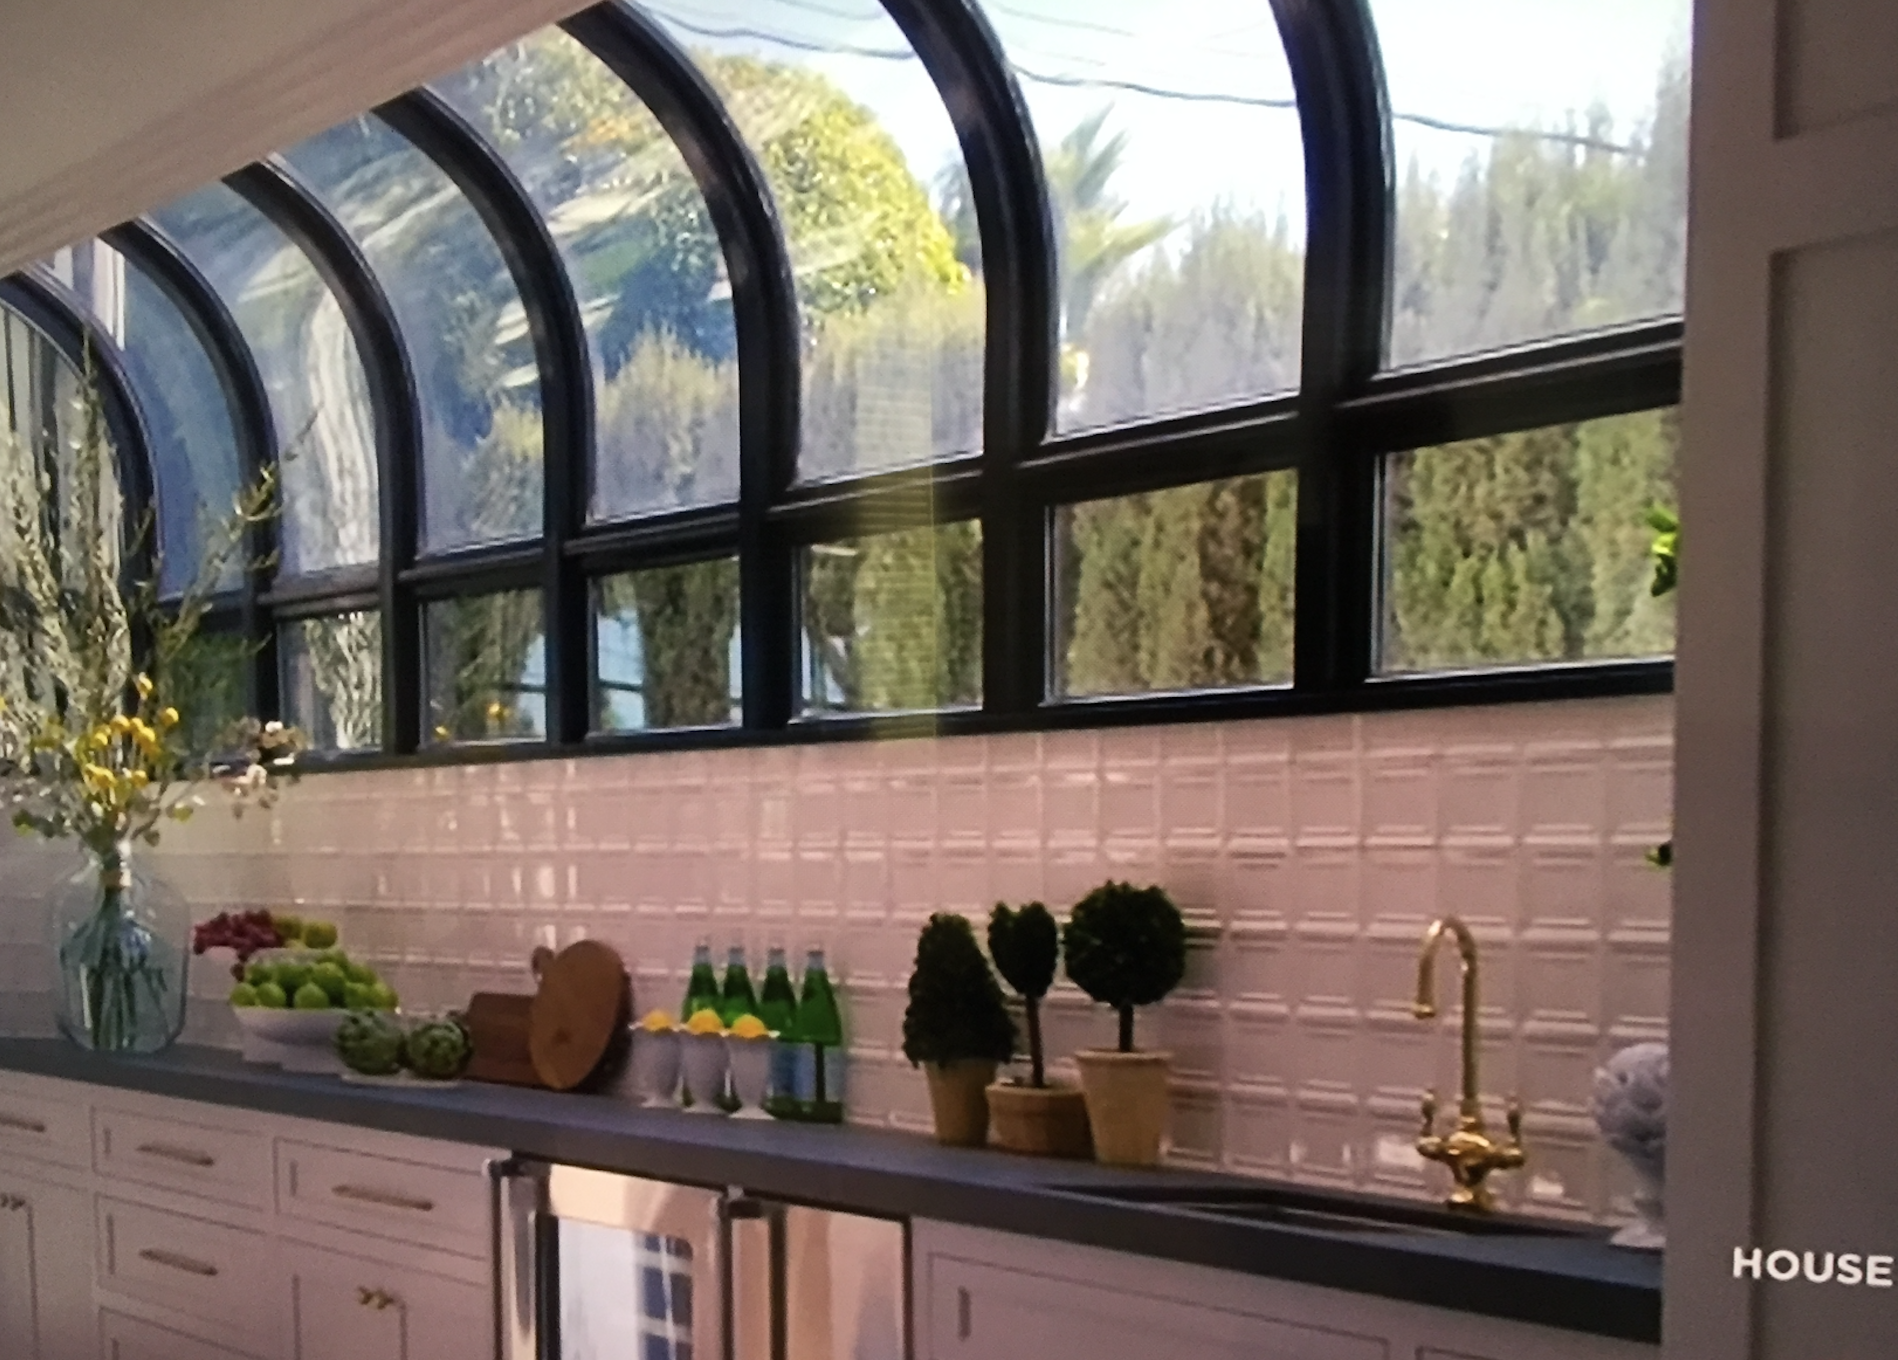 Property Brothers Drew S Honeymoon House Love The Conservatory Glass In The Kitchen Dream Home Design Honeymoon House House Layouts